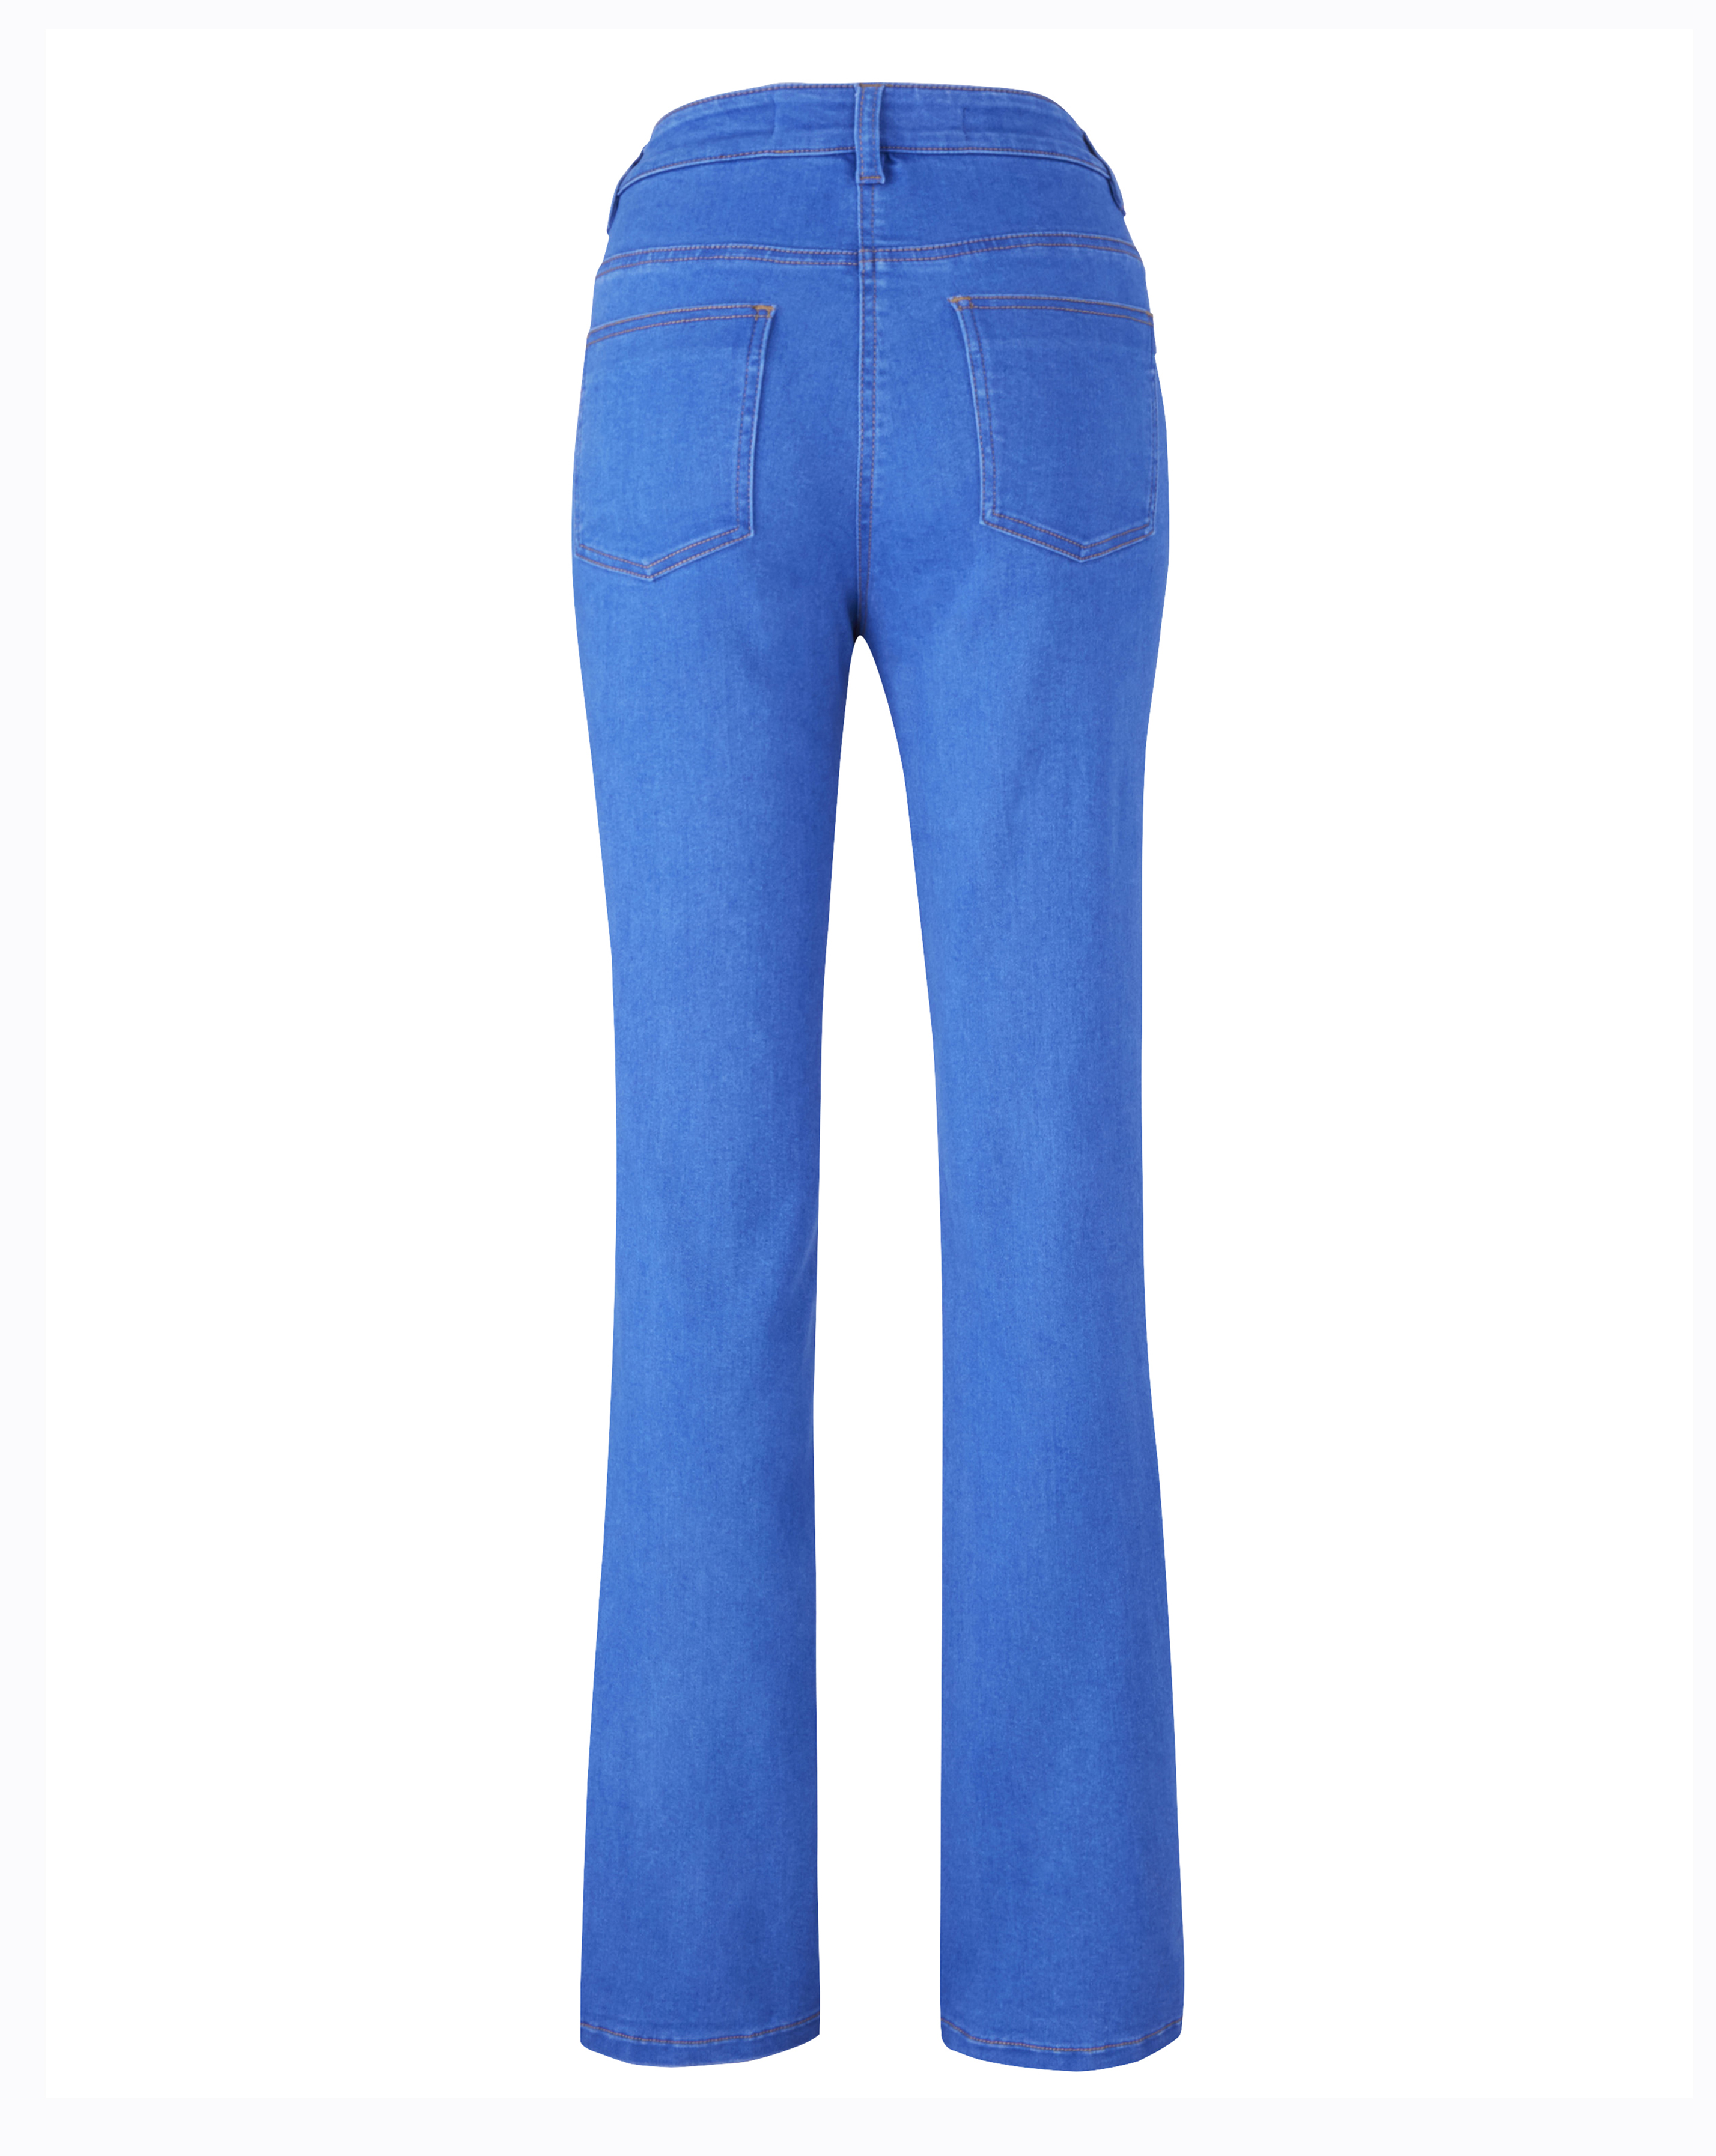 Womens-Kim-High-Waisted-Super-Soft-Bootcut-Jeans-Simply-Be thumbnail 5